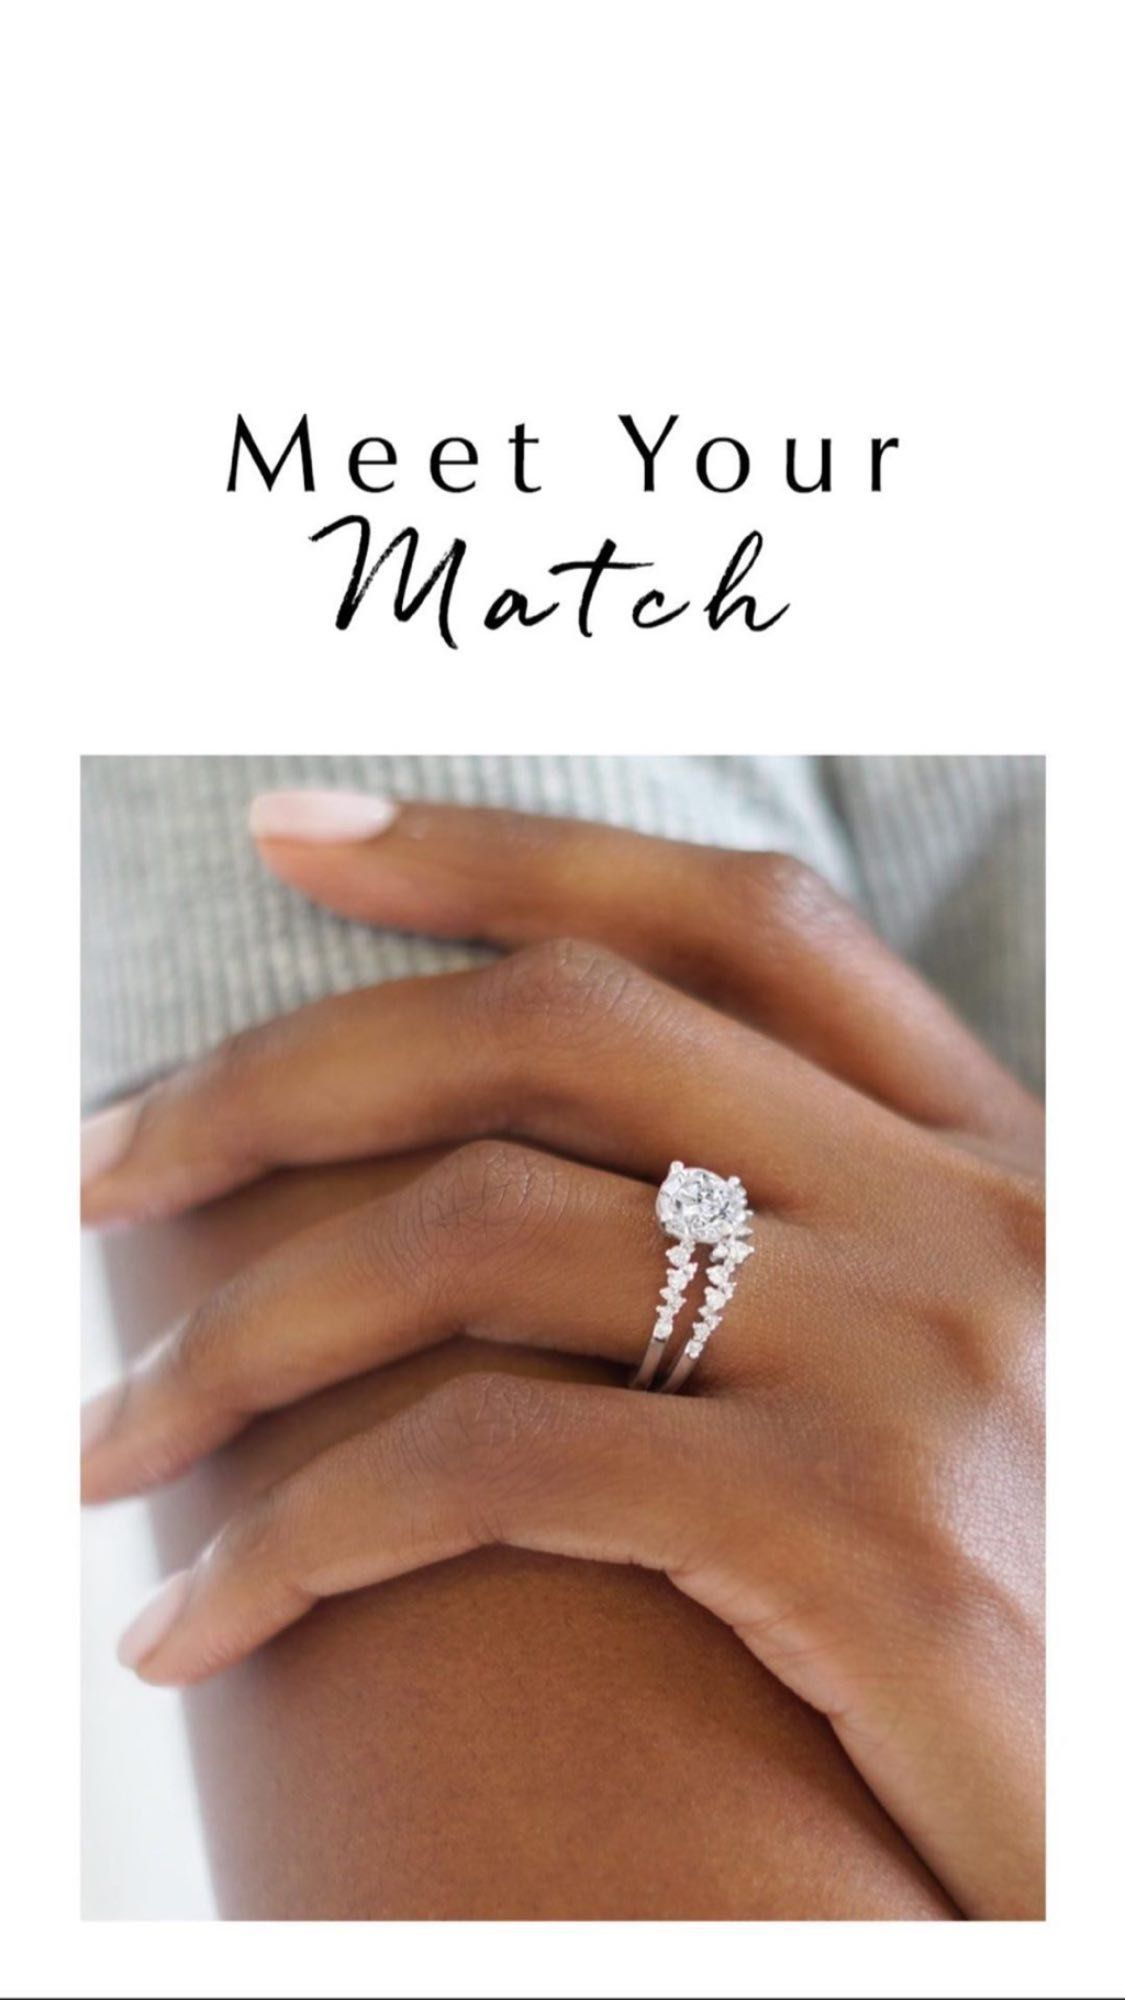 Rings Find Their Perfect Match In Our Collection Of Timeless Engagement Ring And Wedding Ring Wedding Ring Hand Timeless Engagement Ring Matching Wedding Rings